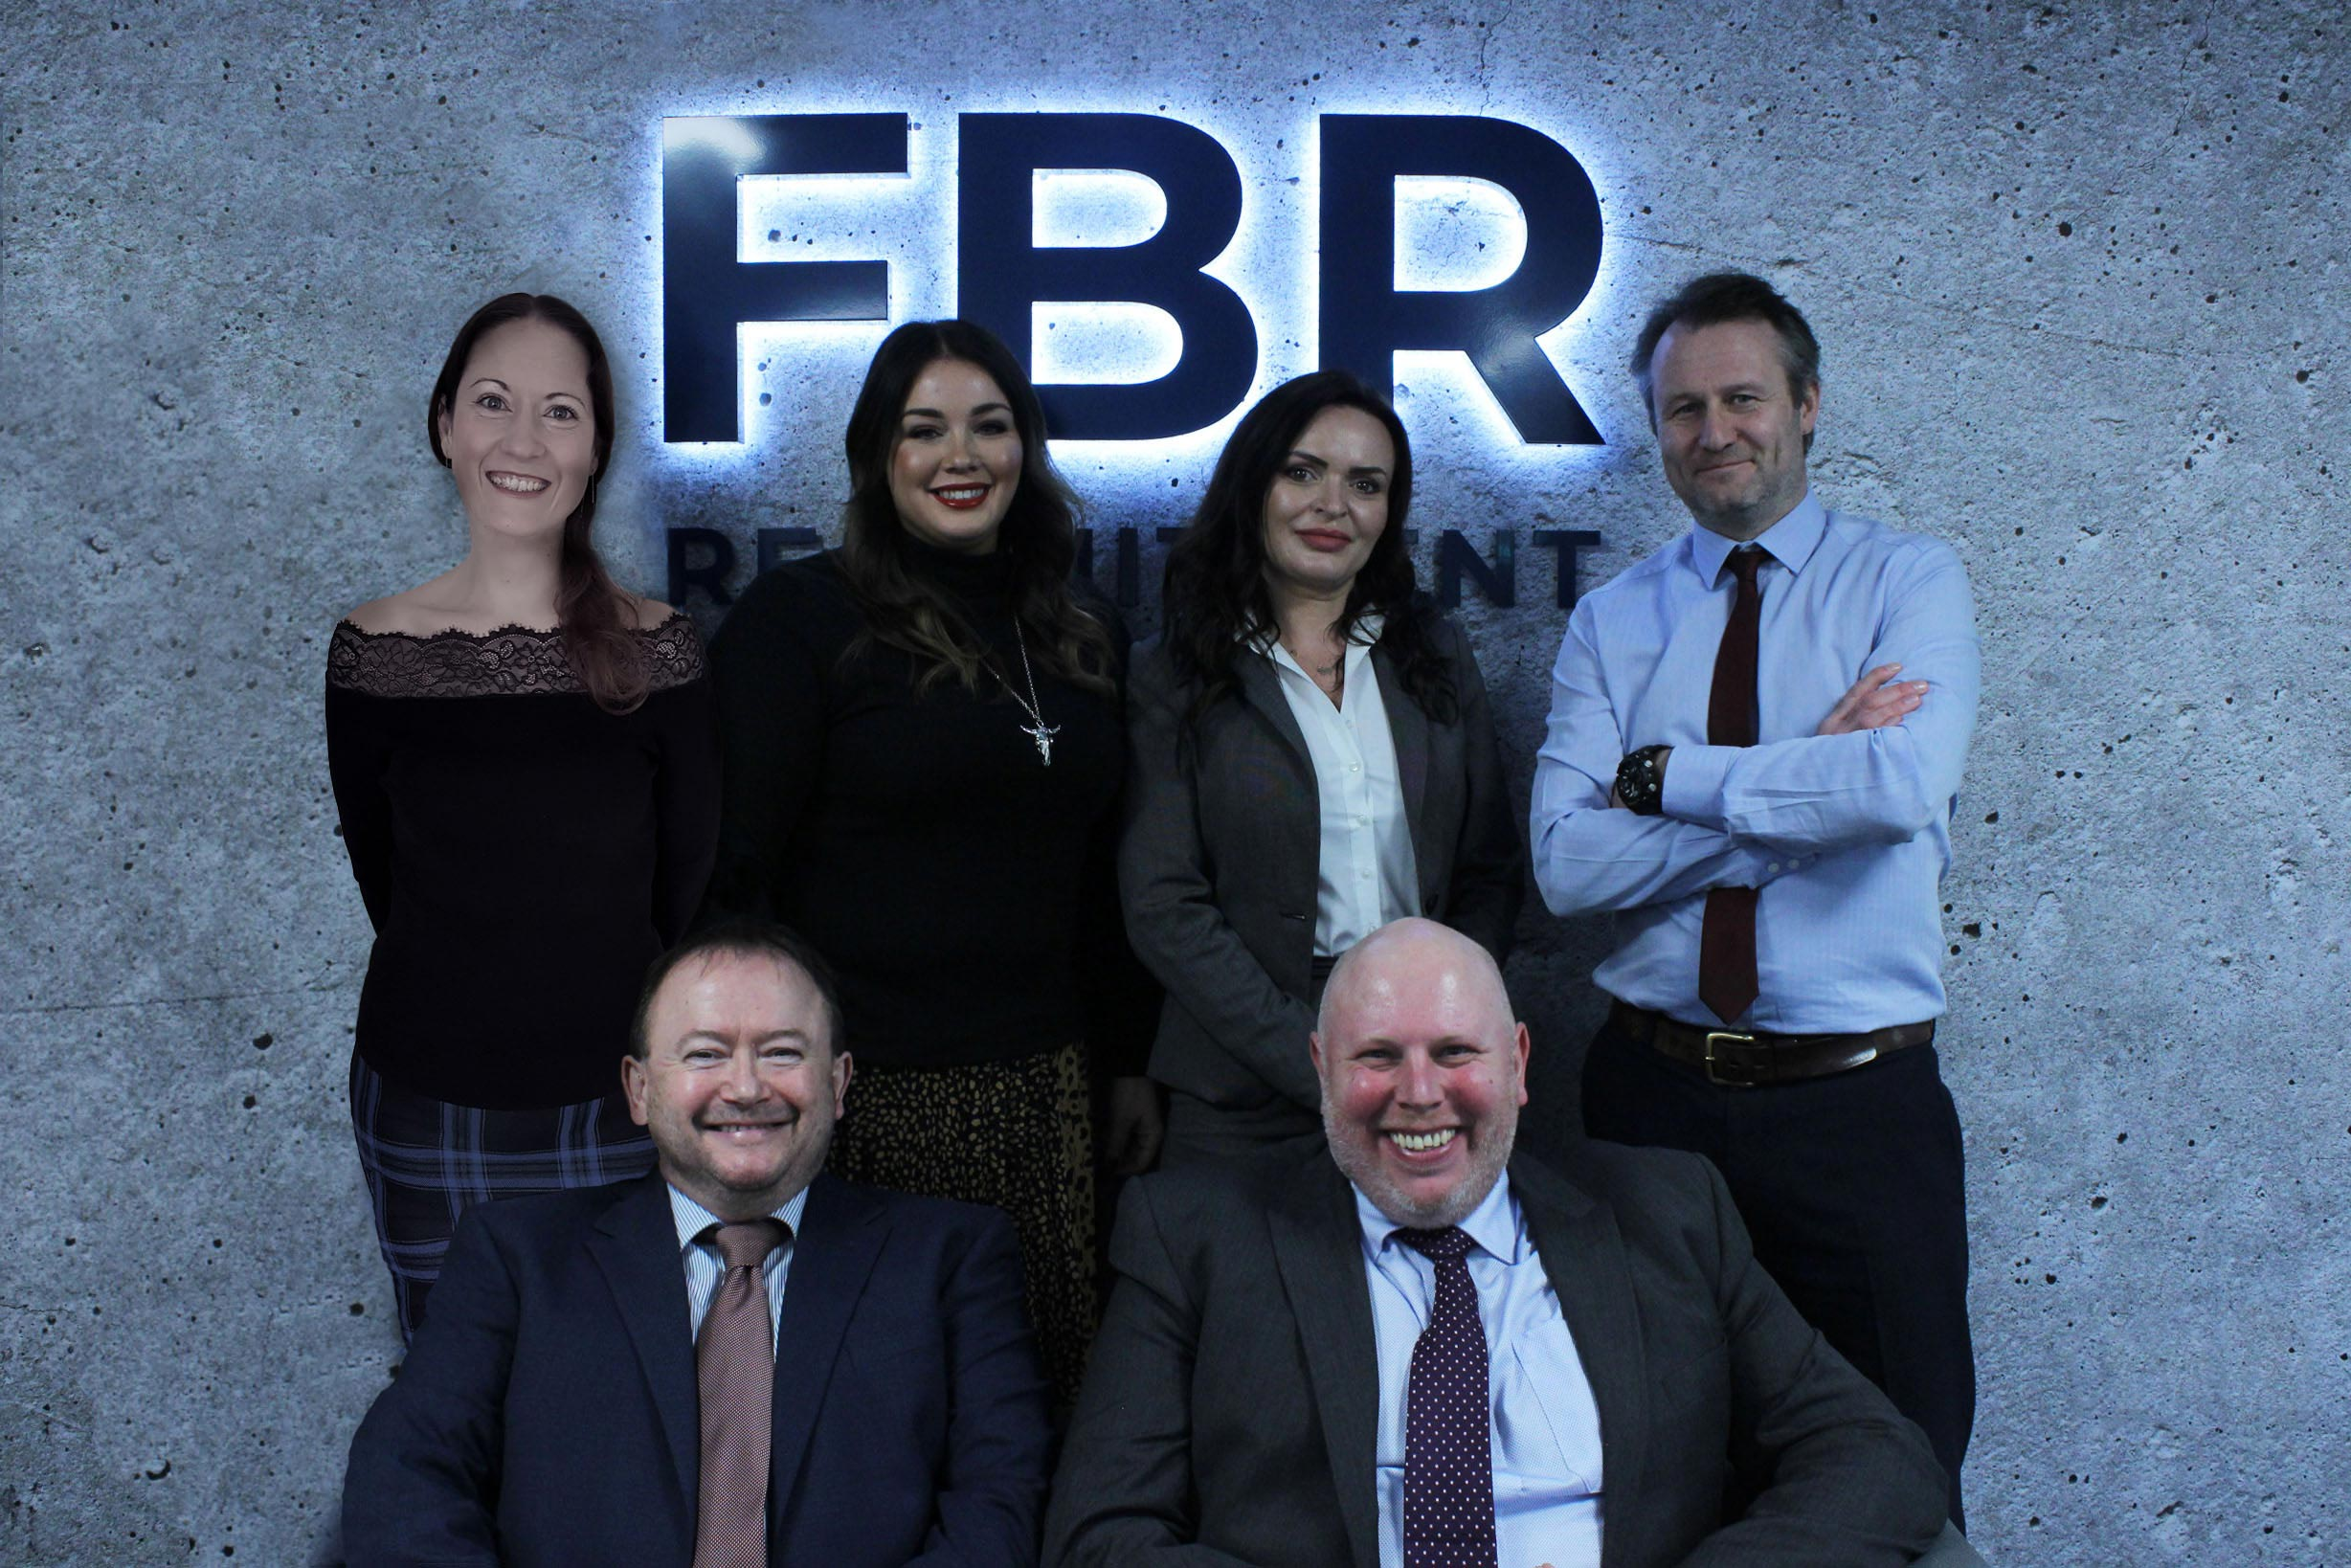 Meet the team at FBR Construction Recruitment